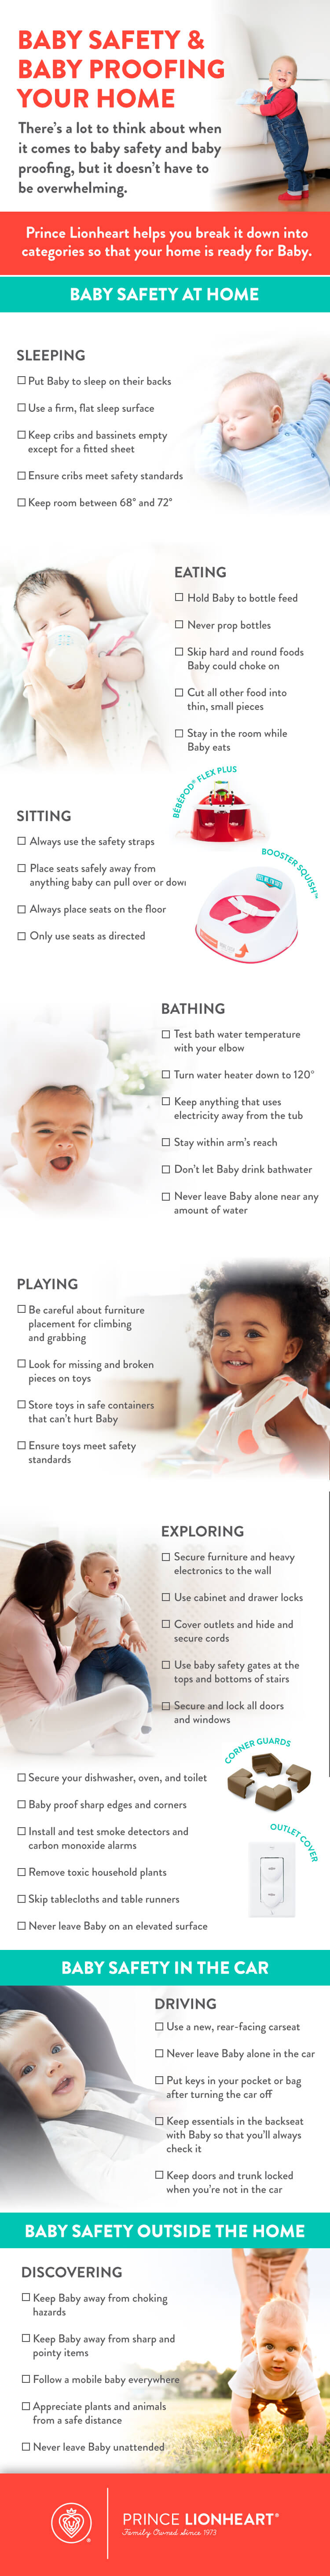 Baby Safety and Baby Proofing Your Home